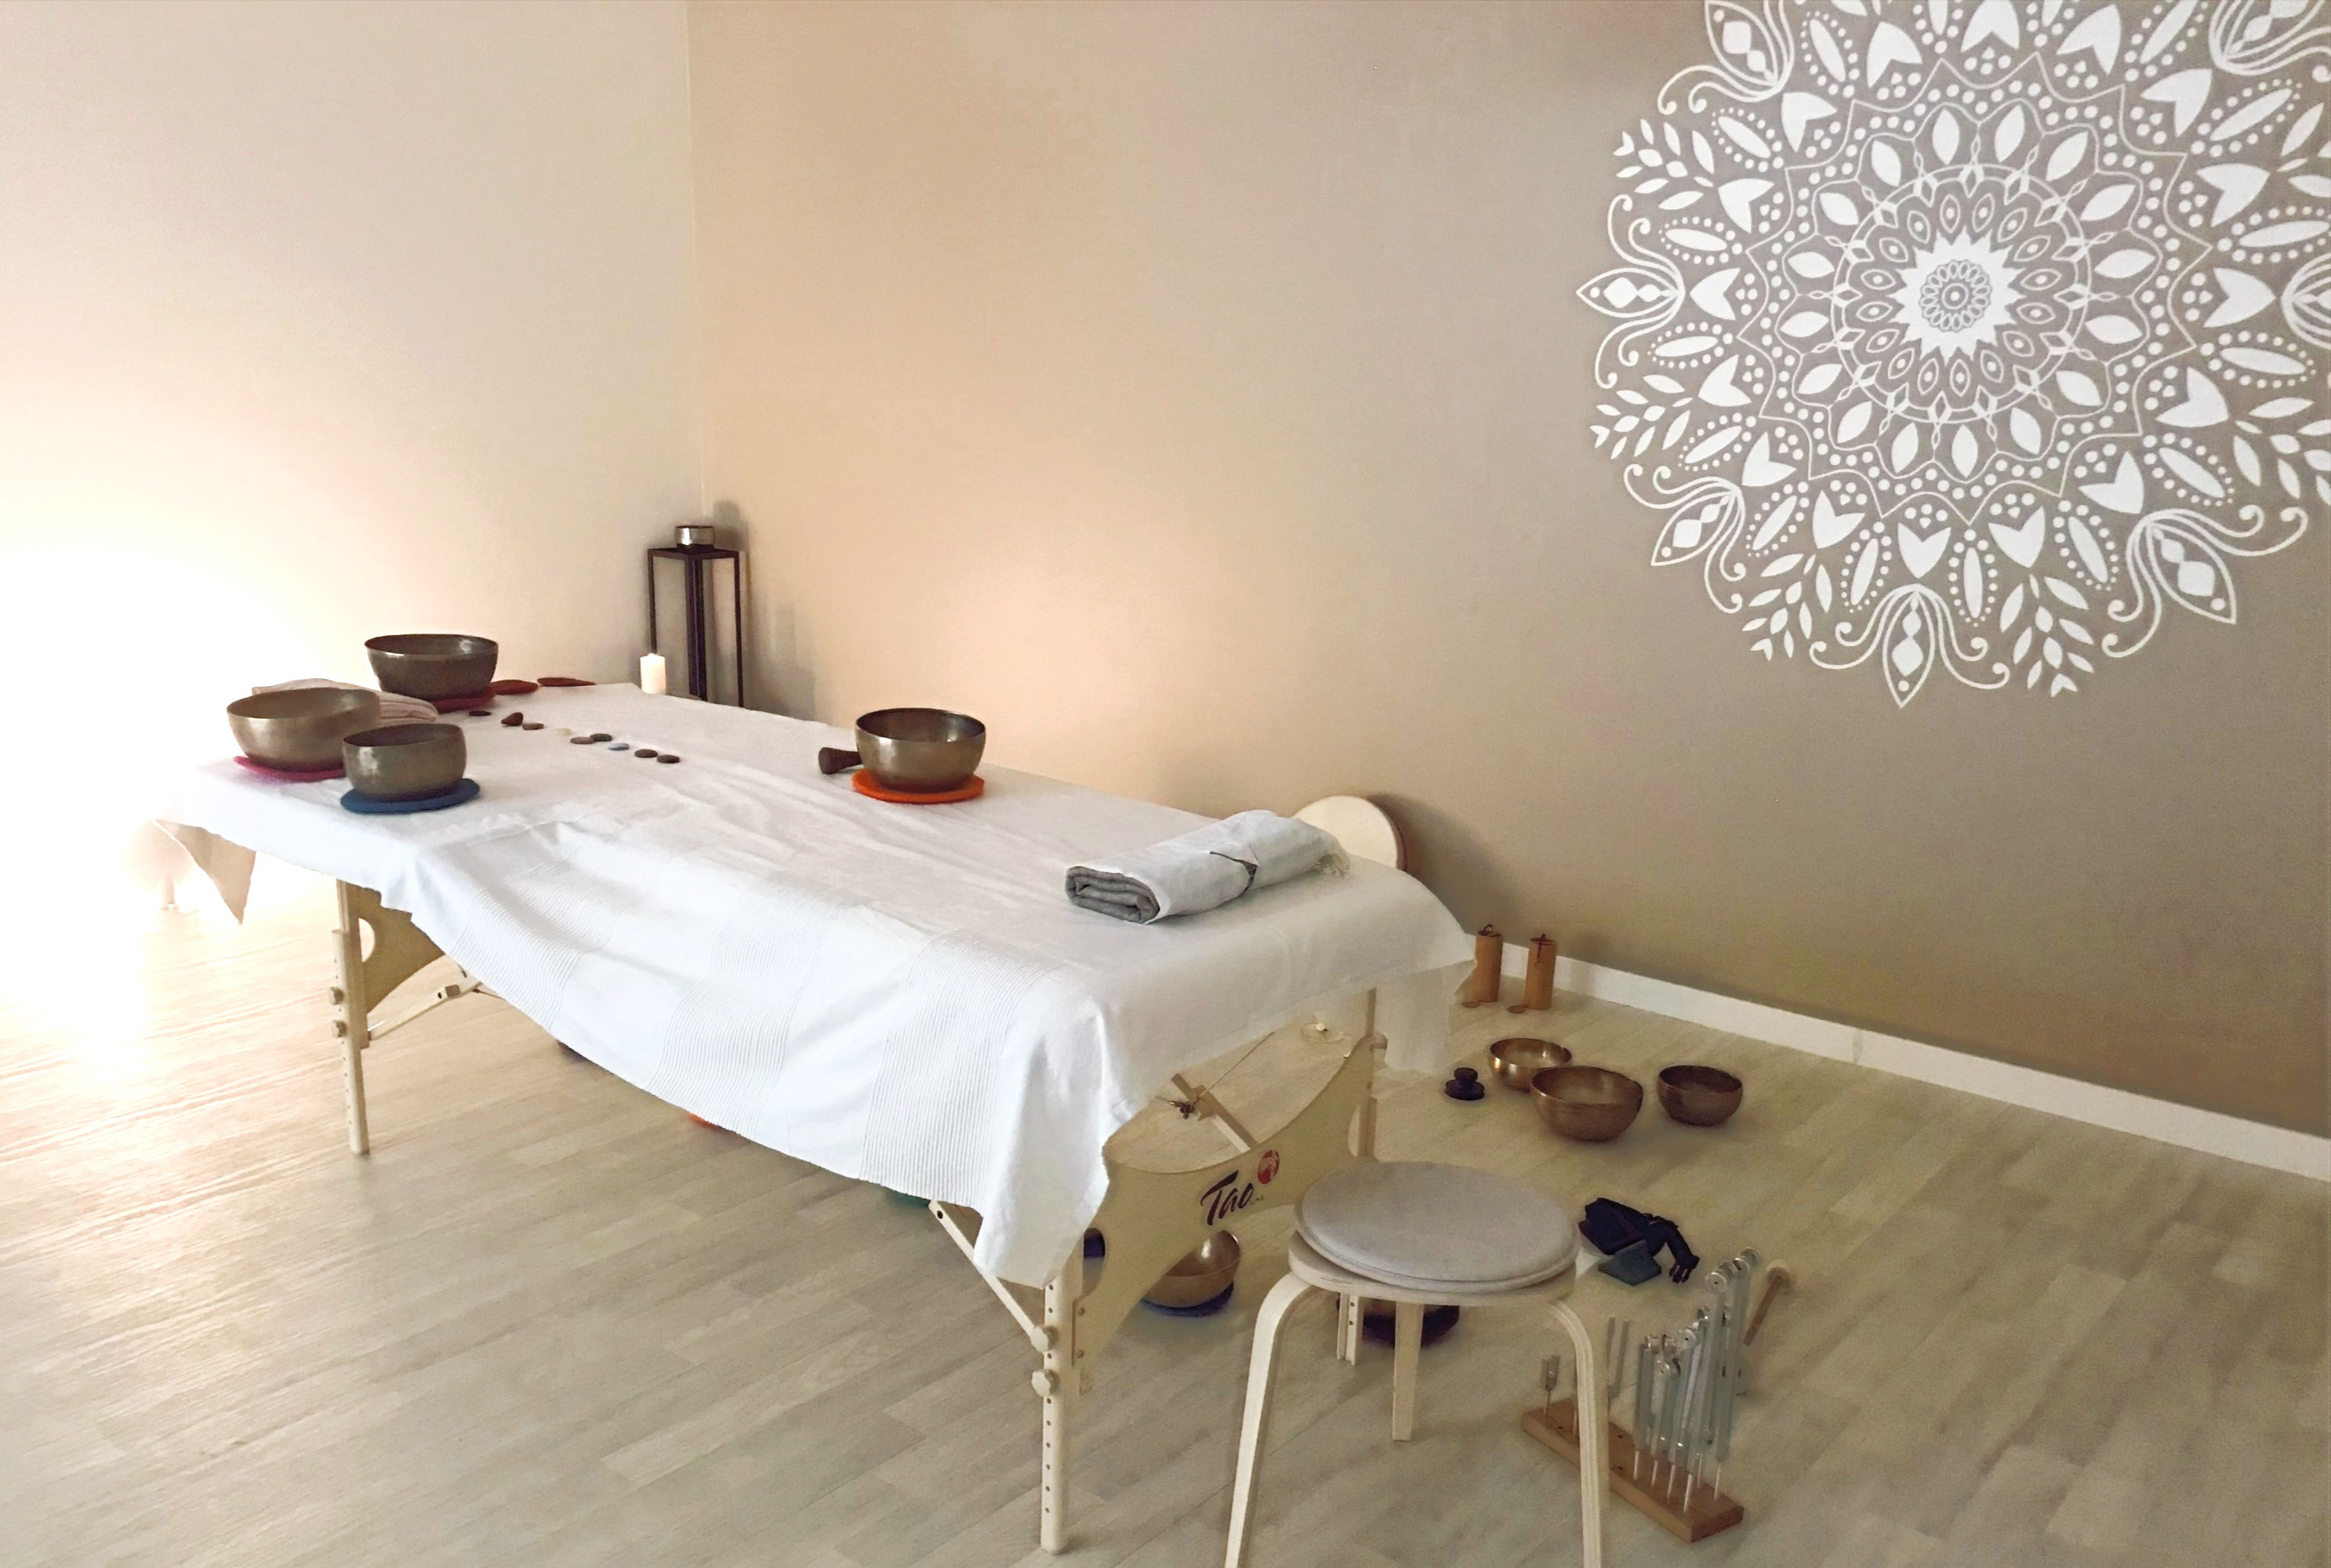 soin/massage sonore